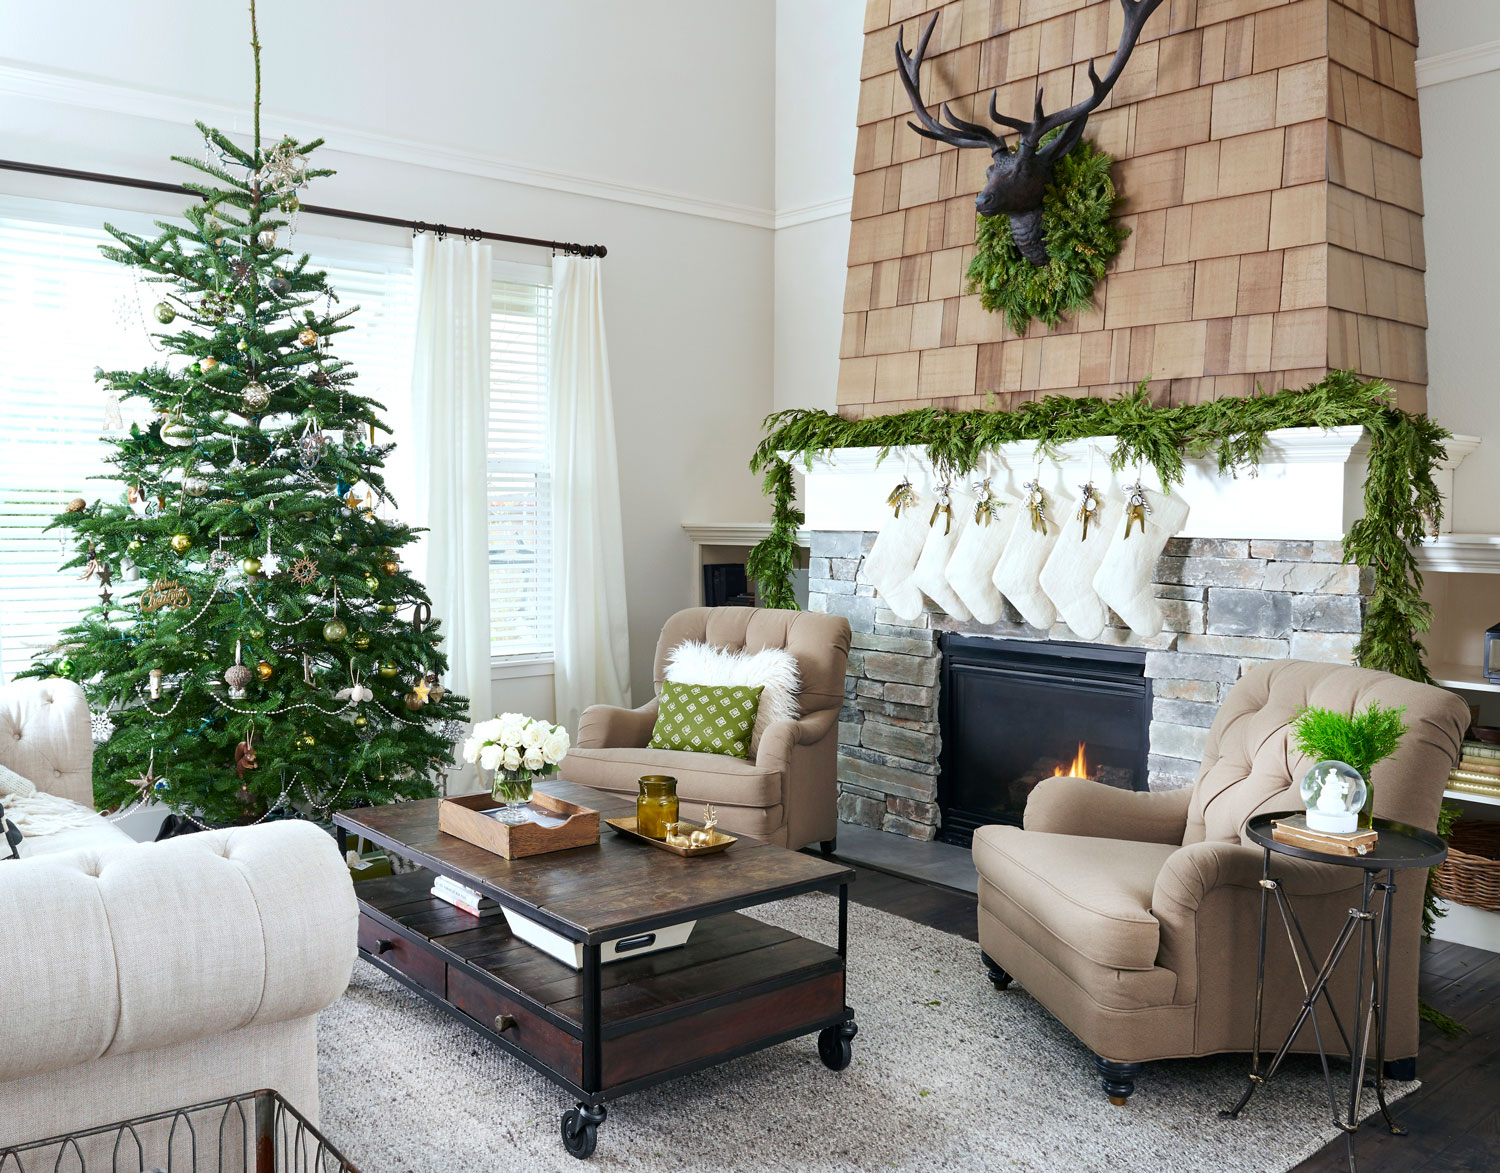 in a neutral living room a verdant garland wreath and tree provide a lively jolt of color the unadorned garland and wreath maintain the simplicity of - Rustic Christmas Decor